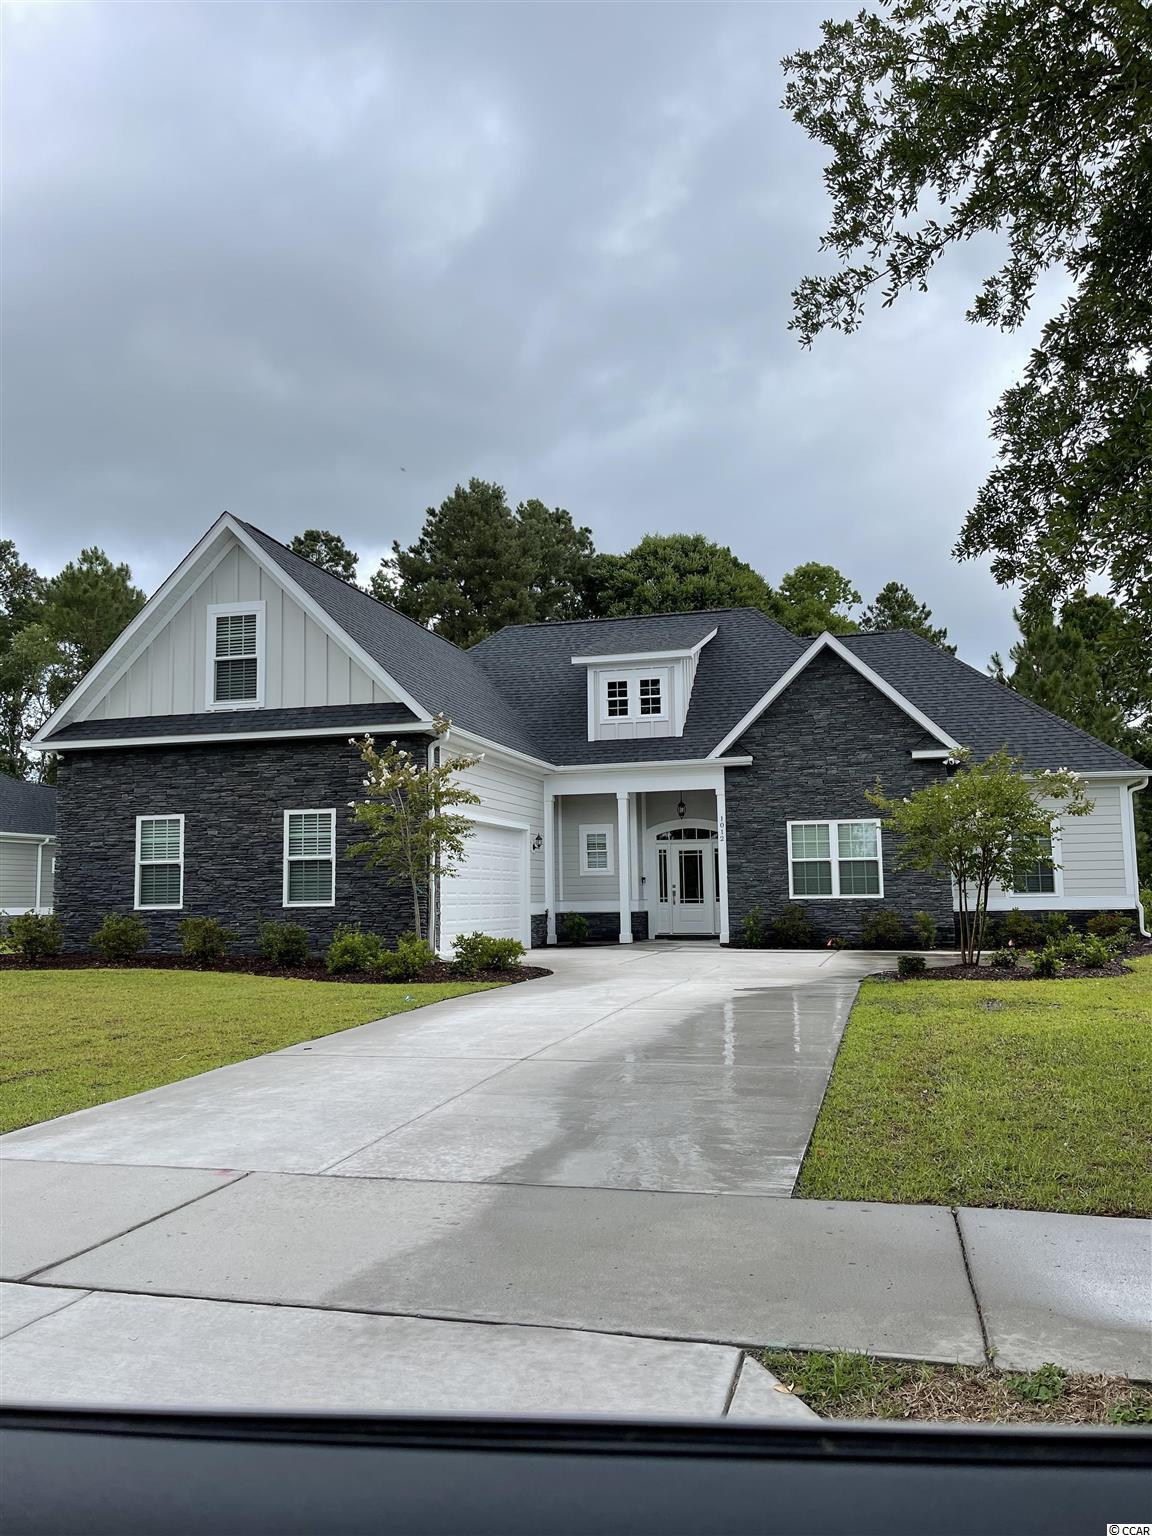 This beautiful new construction home is under construction and will be ready for a lucky buyer in April 2021! Located in the Wild Wing Plantation community that has a World class golf course and an amenities center that is amazing!. As you will enter this perfectly laid out open floorpan home with 4 bedrooms 3 bathrooms and a 5th room perfect for an office on the first floor. You will notice right away the upgrades and quality of work are above and beyond other larger builders in the area. This is a 100% custom home and it shows!. With LVP flooring throughout, Hardie board siding, upgraded countertops, tankless gas water heater, soft close all wood cabinets, all showers are tile including a large shower and tub in the master bathroom, custom wood shelving in your oversized master walk in closet, large tray ceilings, appliances credit will be given, crown molding and upgraded lighting package. This is a large private wooded lot on a quiet cul de sac street. Community has two entrances/exits which makes for easy access to all shopping, restaurants, medical facilities, Coastal Carolina University and two Highways for a quick drive to anywhere on the beach!. Buyers if purchase in time will be given choices for certain finishes. Pictures are of a completed similar home in the community. Book your showing today as you will not be disappointed!